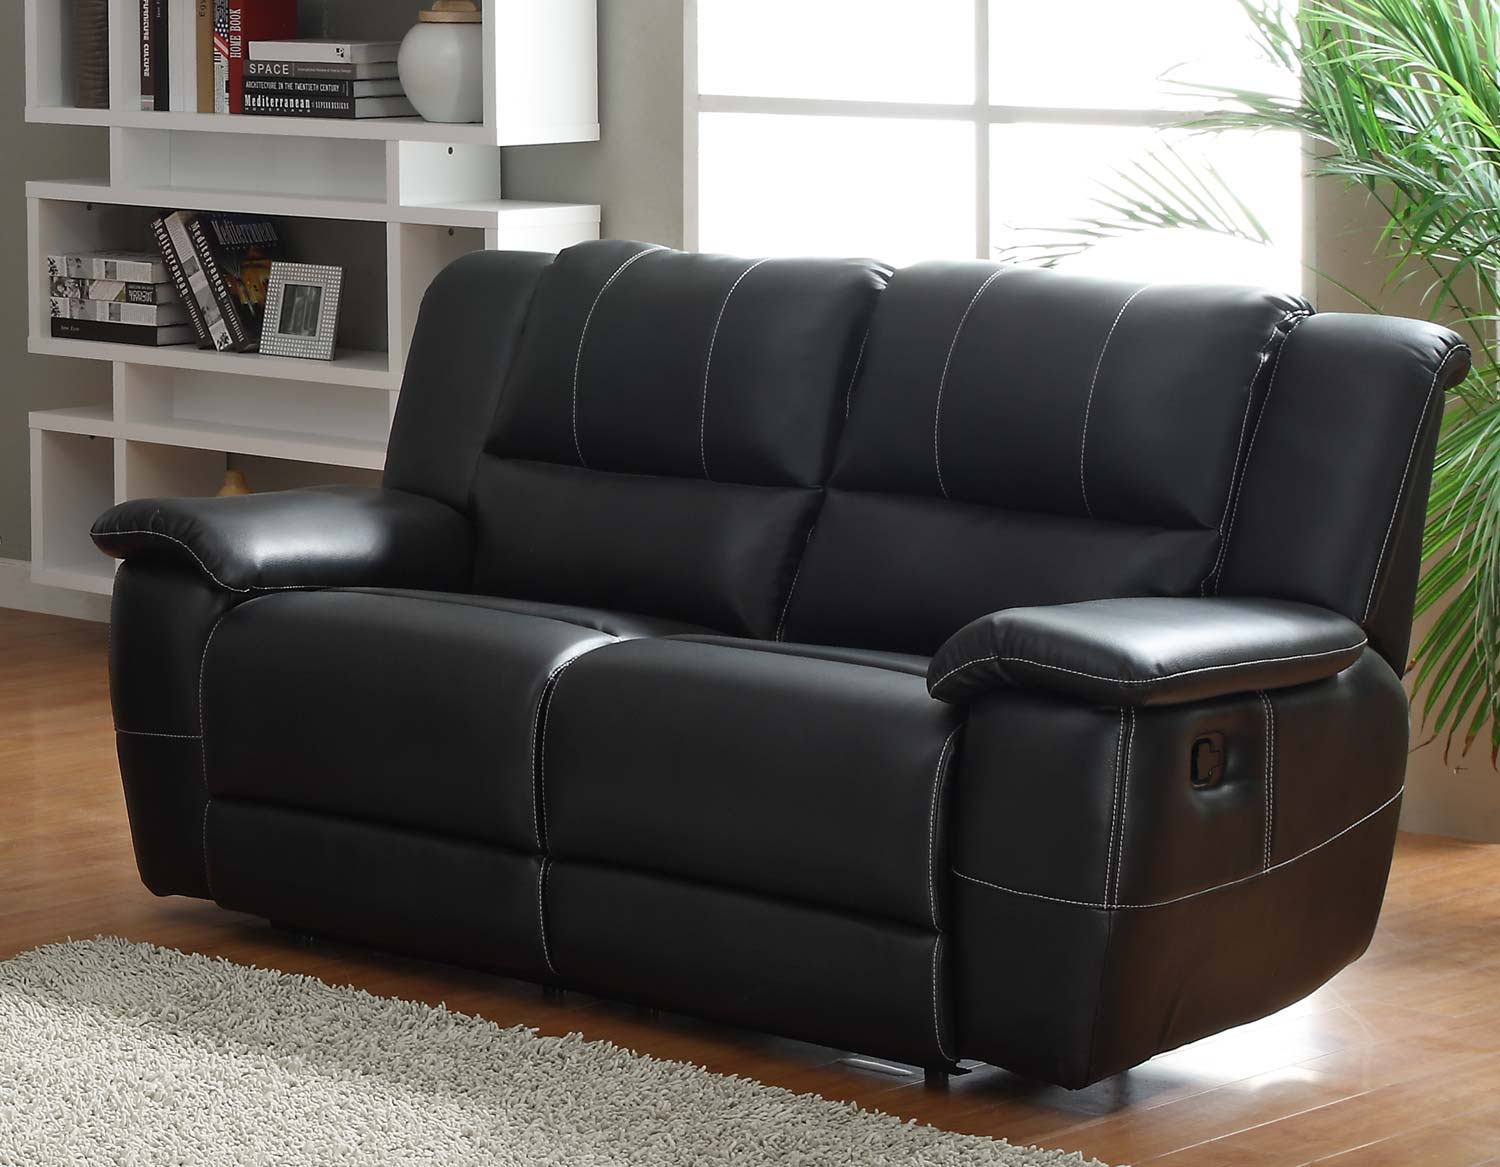 Homelegance Cantrell Double Reclining Loveseat Cantrell Collection